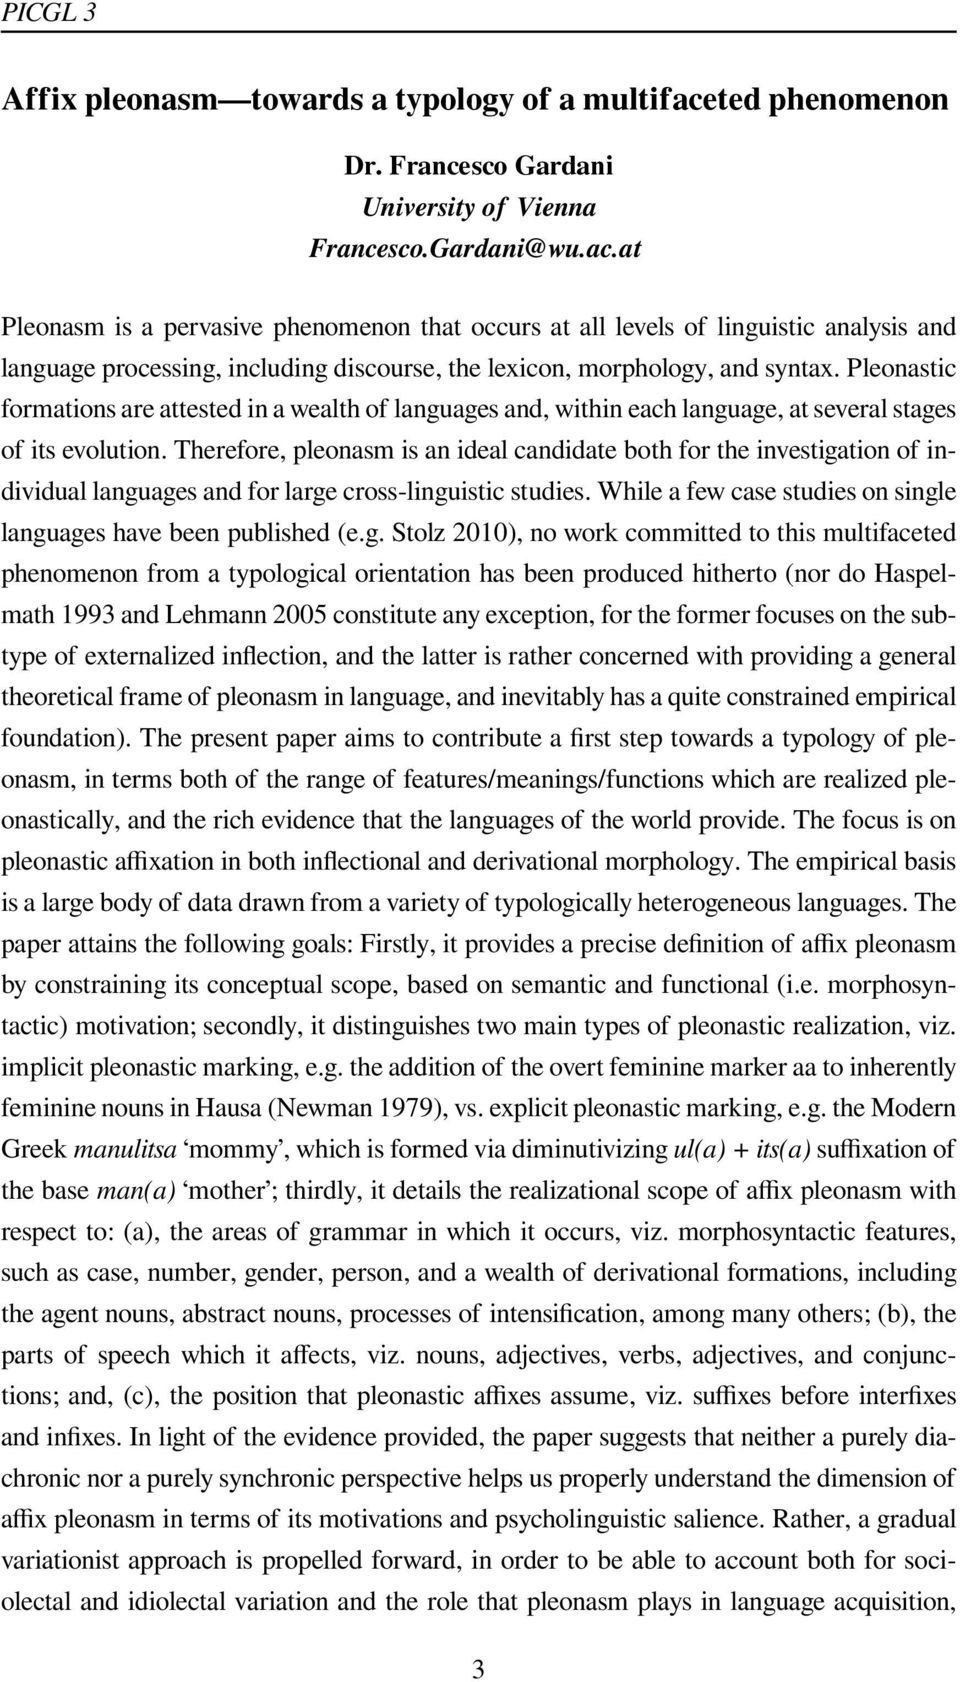 at Pleonasm is a pervasive phenomenon that occurs at all levels of linguistic analysis and language processing, including discourse, the lexicon, morphology, and syntax.